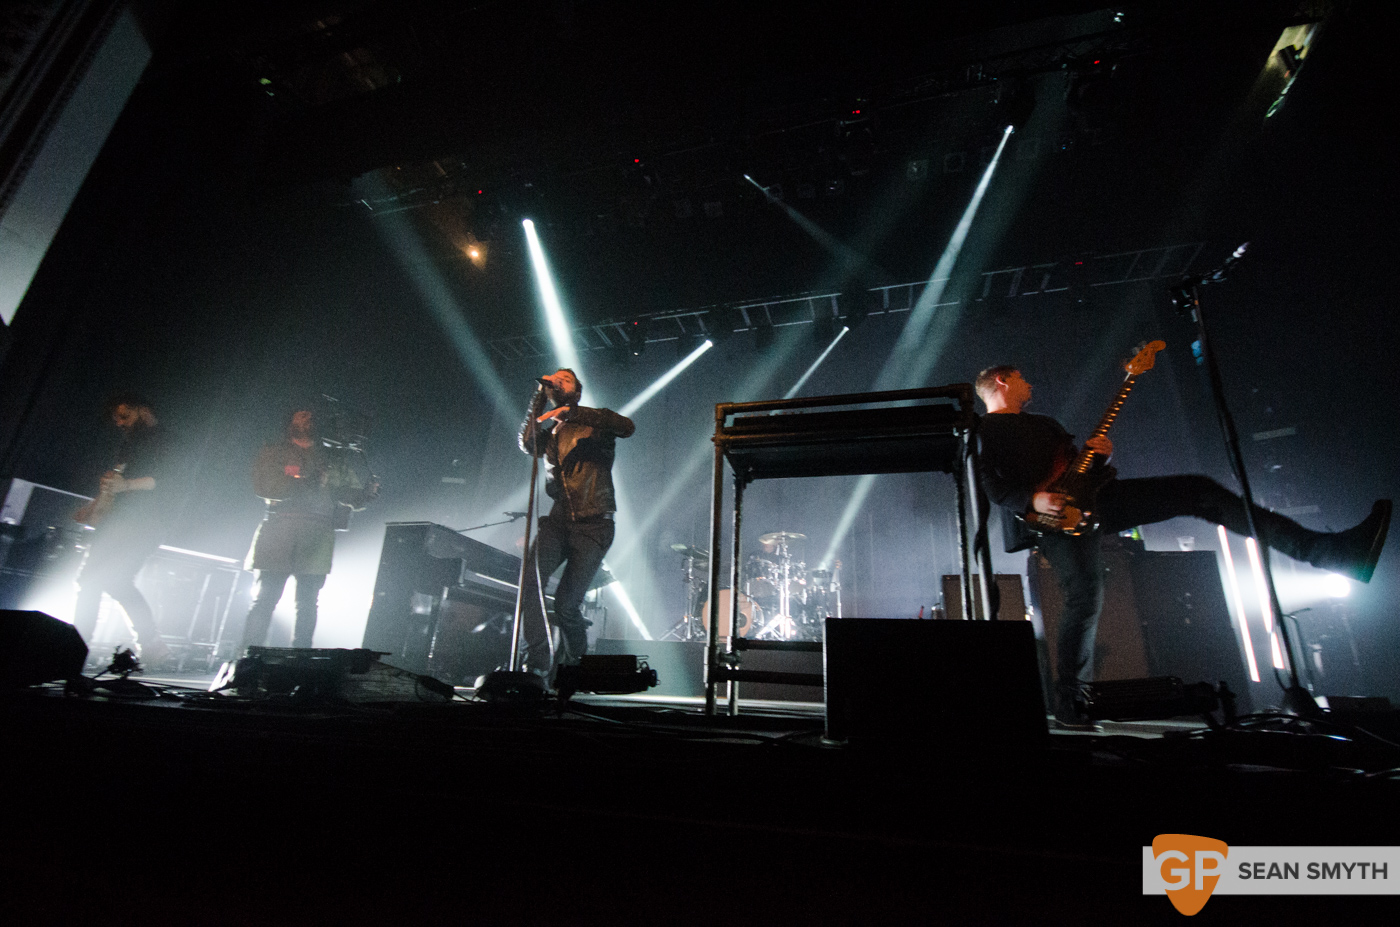 editors-at-the-olympia-theatre-by-sean-smyth-10-10-15-23-of-28_21469302353_o